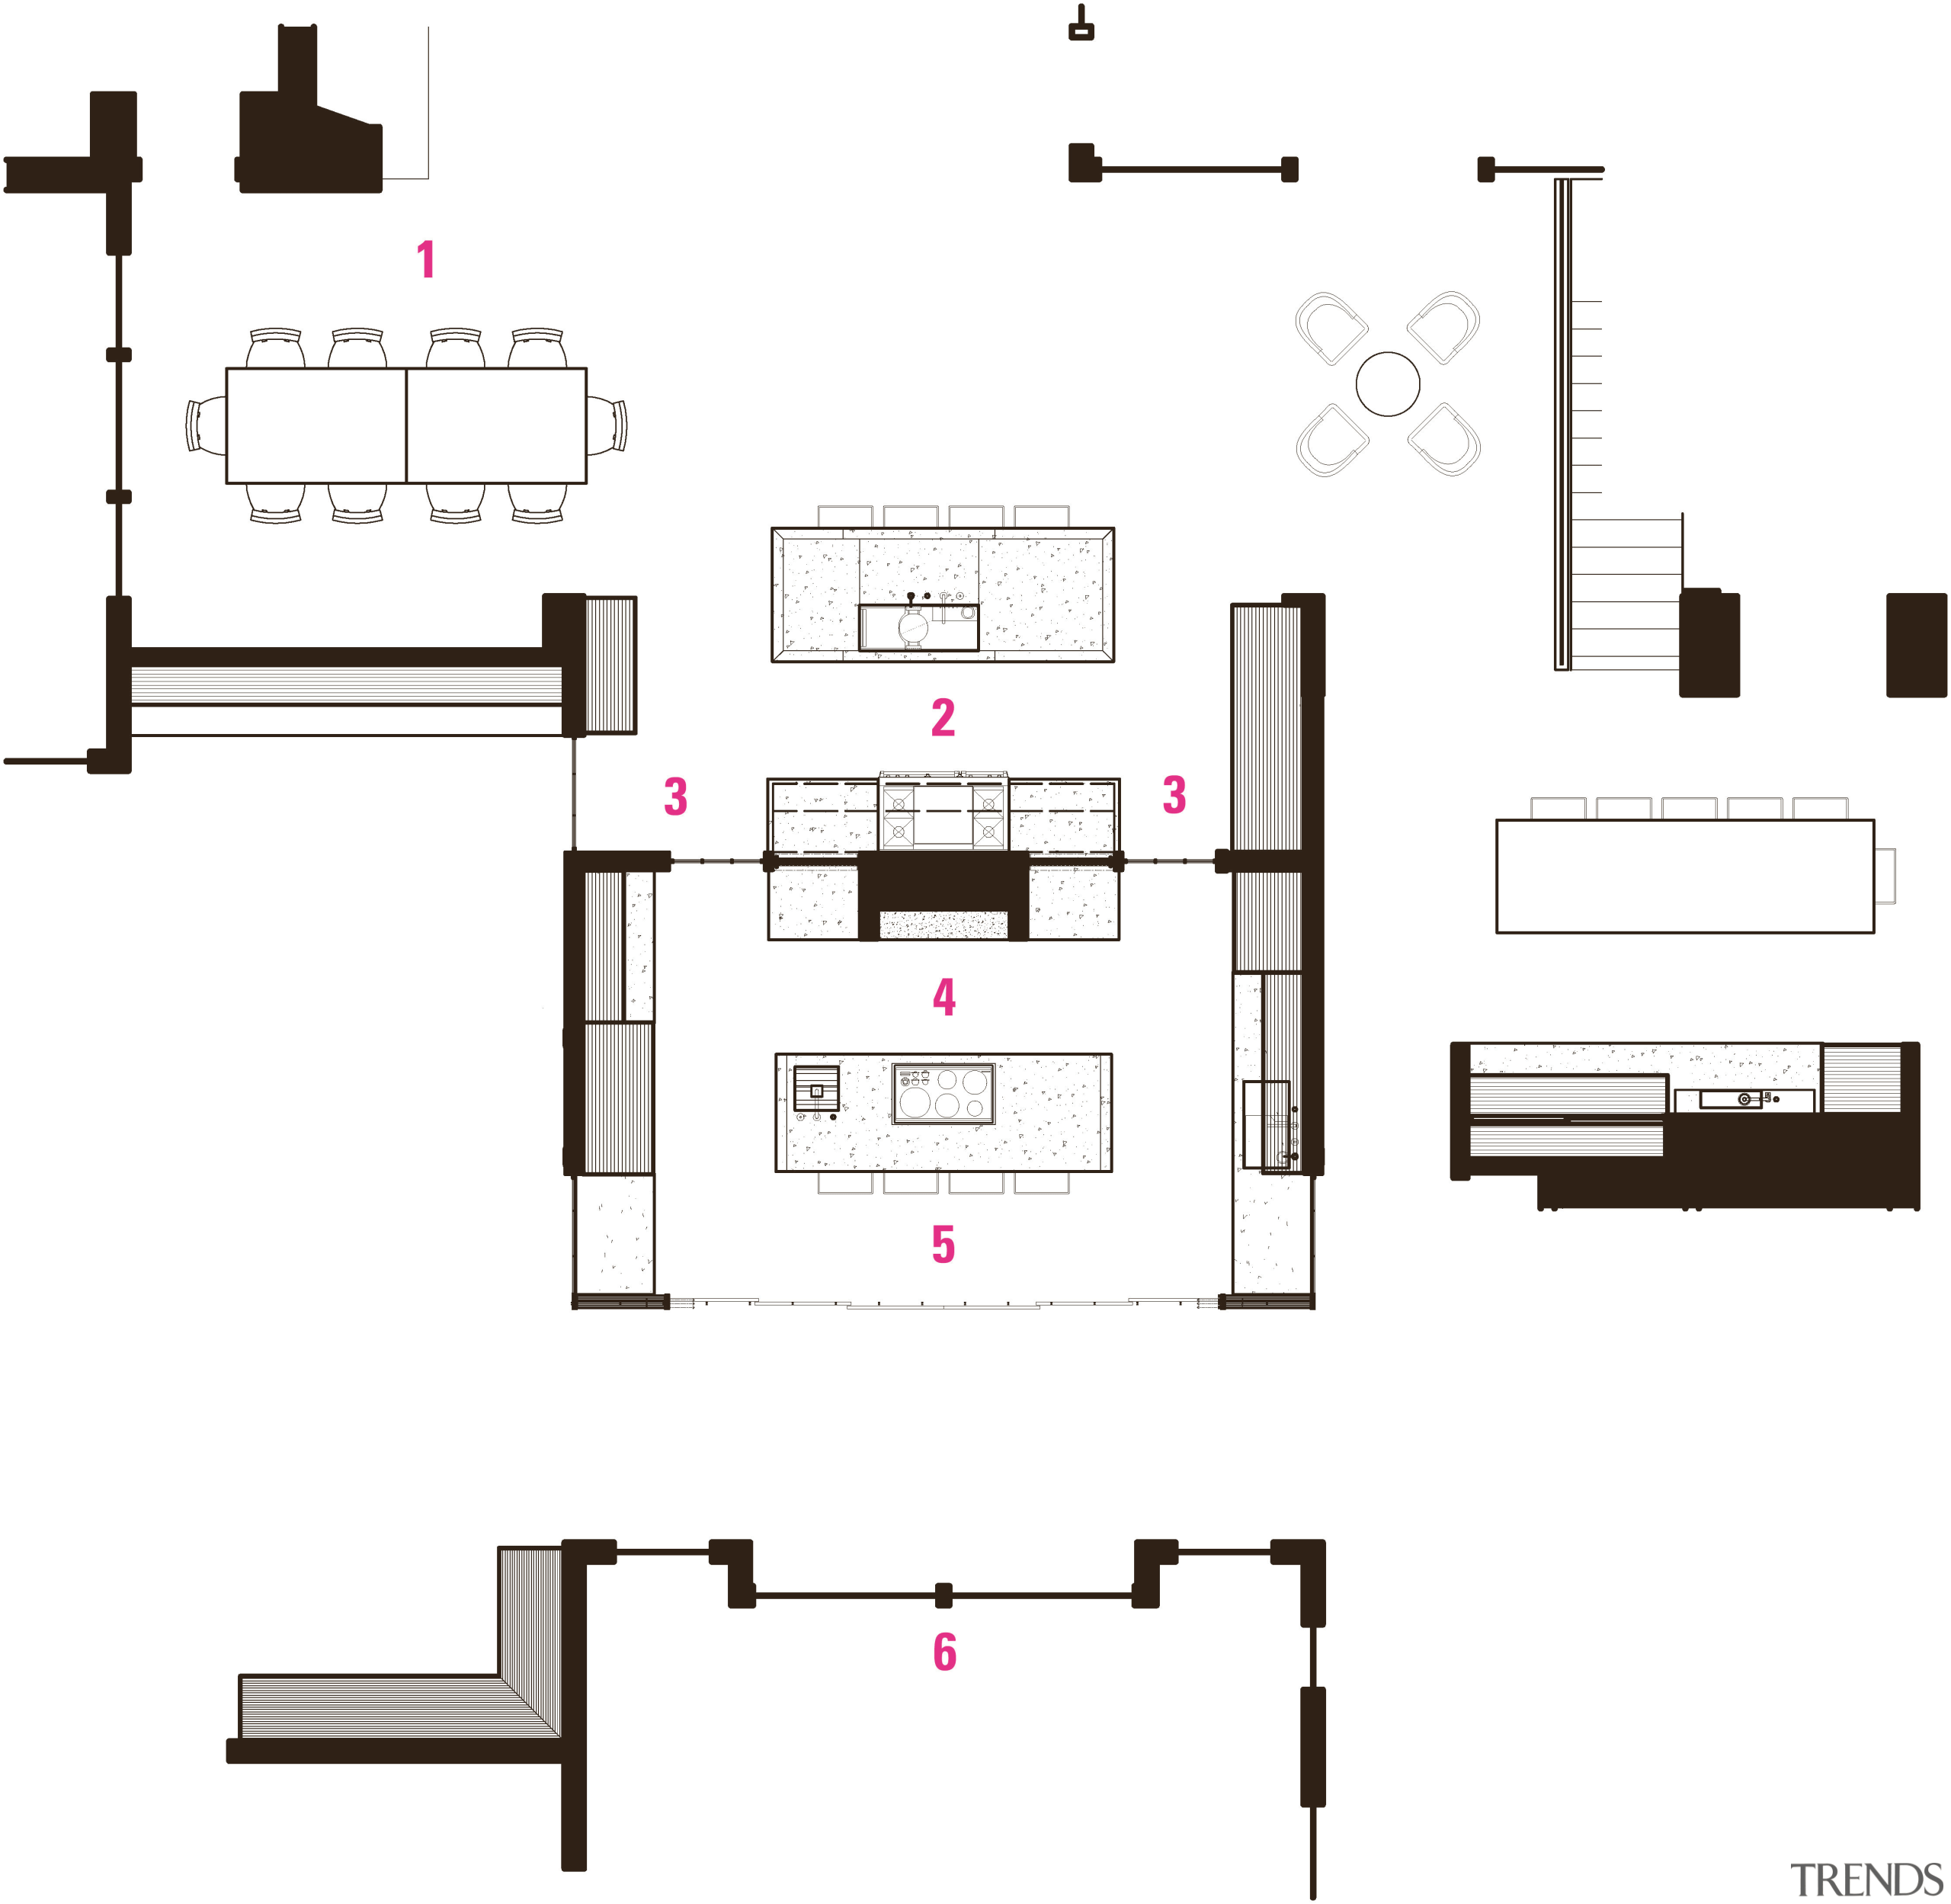 Plan of back-to-back living and entertaining kitchens by angle, area, design, diagram, drawing, floor plan, font, furniture, line, plan, product, product design, text, white